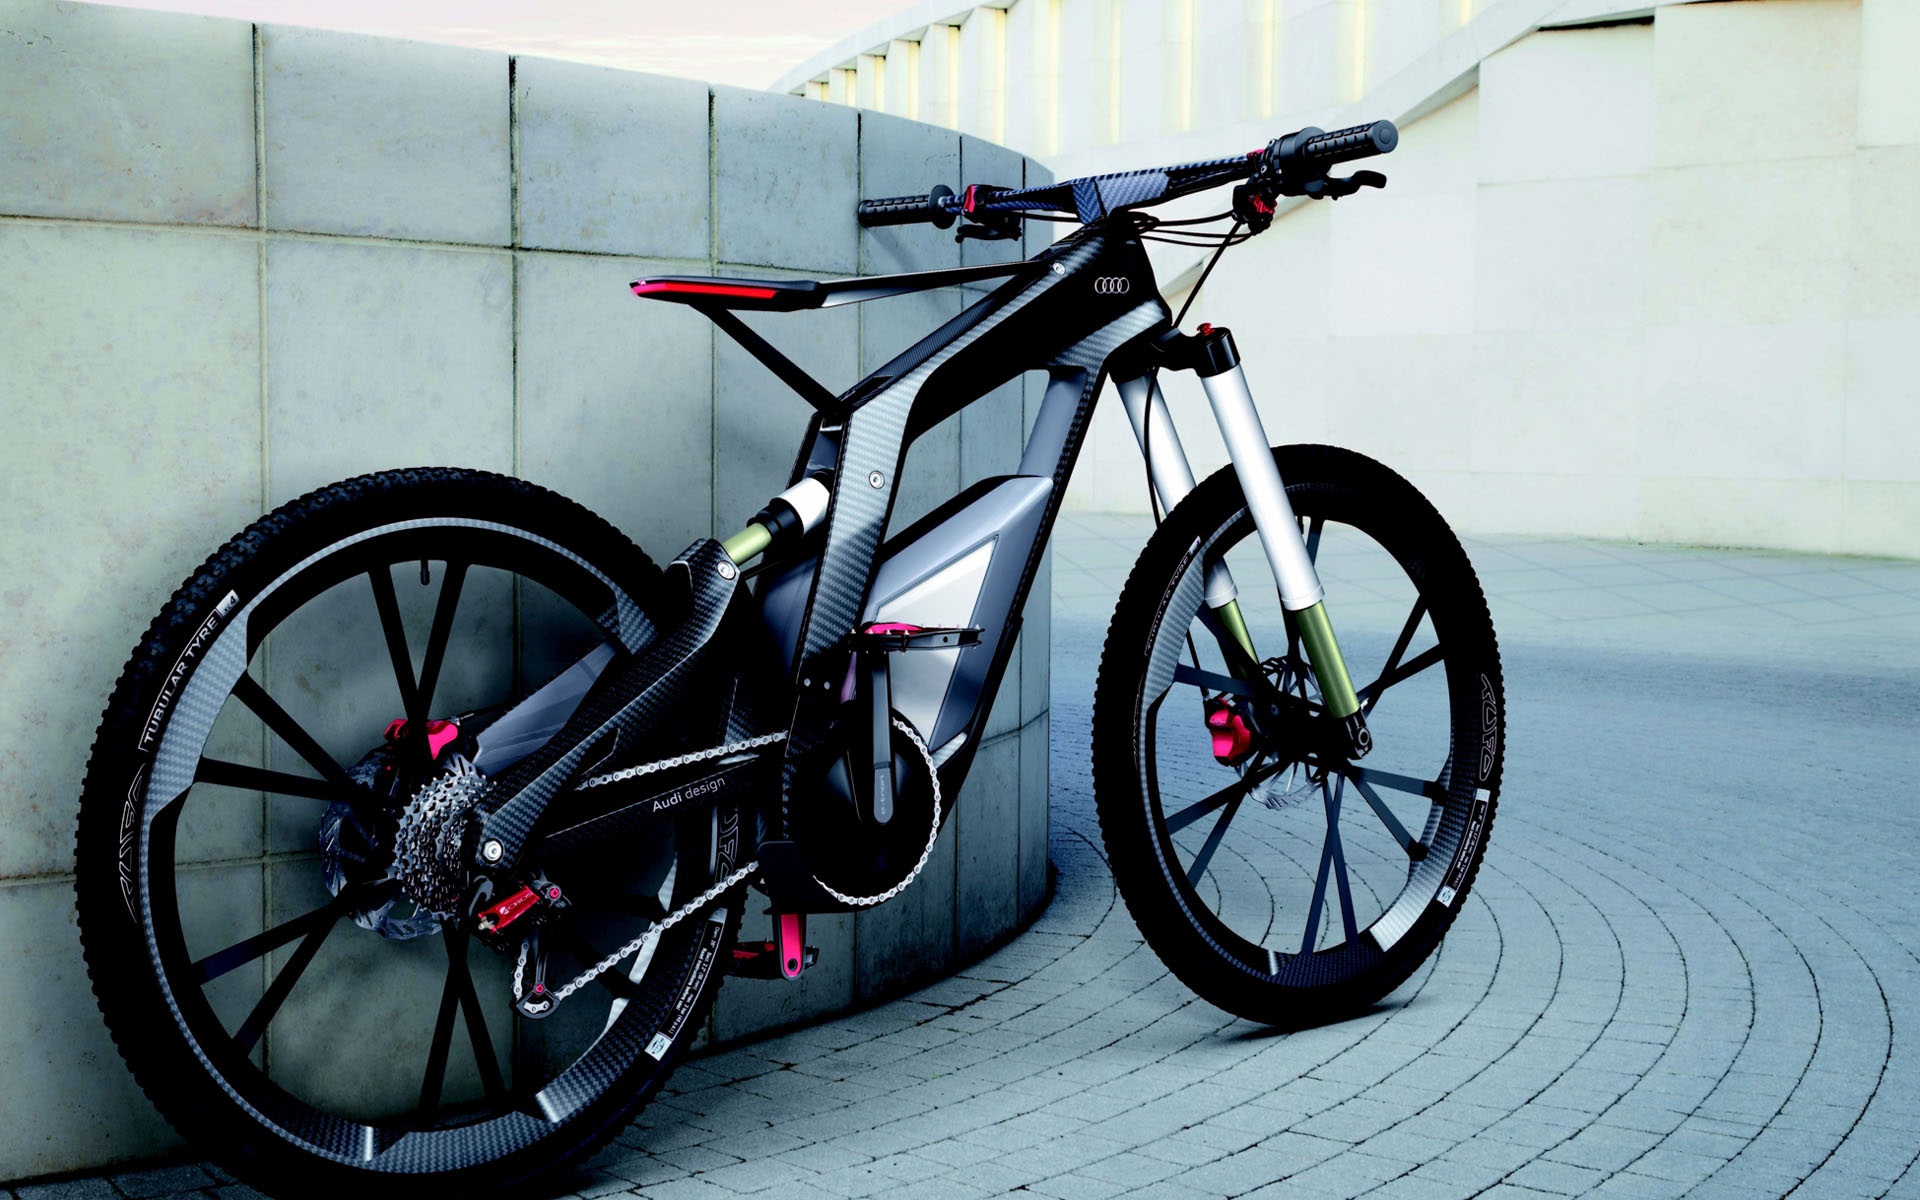 cool bicycle designs hd wallpaper background images